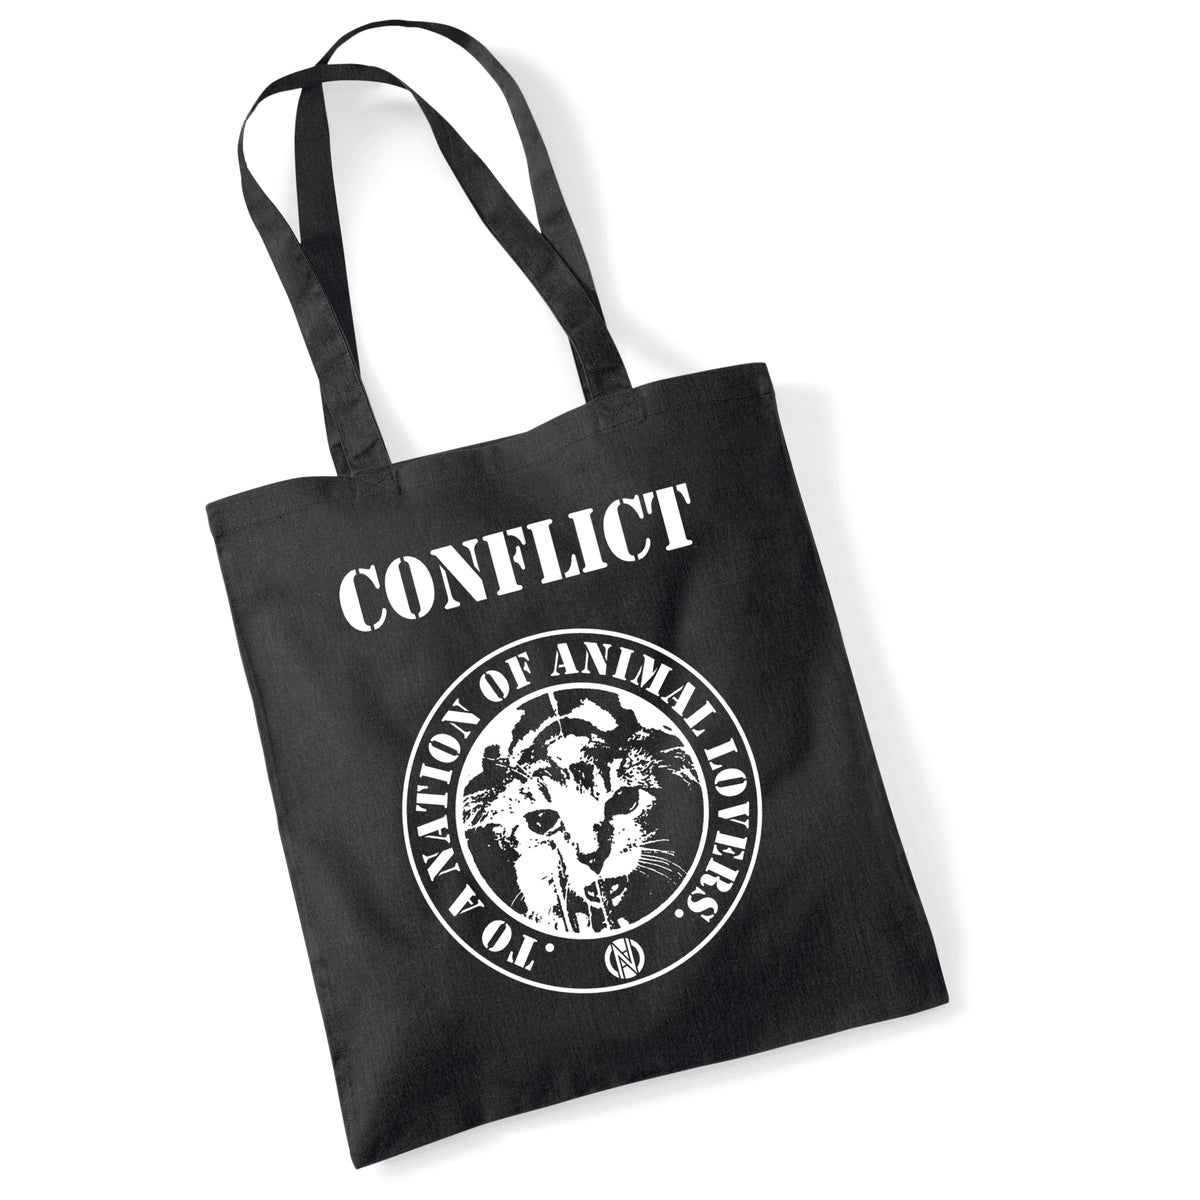 Image of CONFLICT Nation of Animal Lovers tote bag